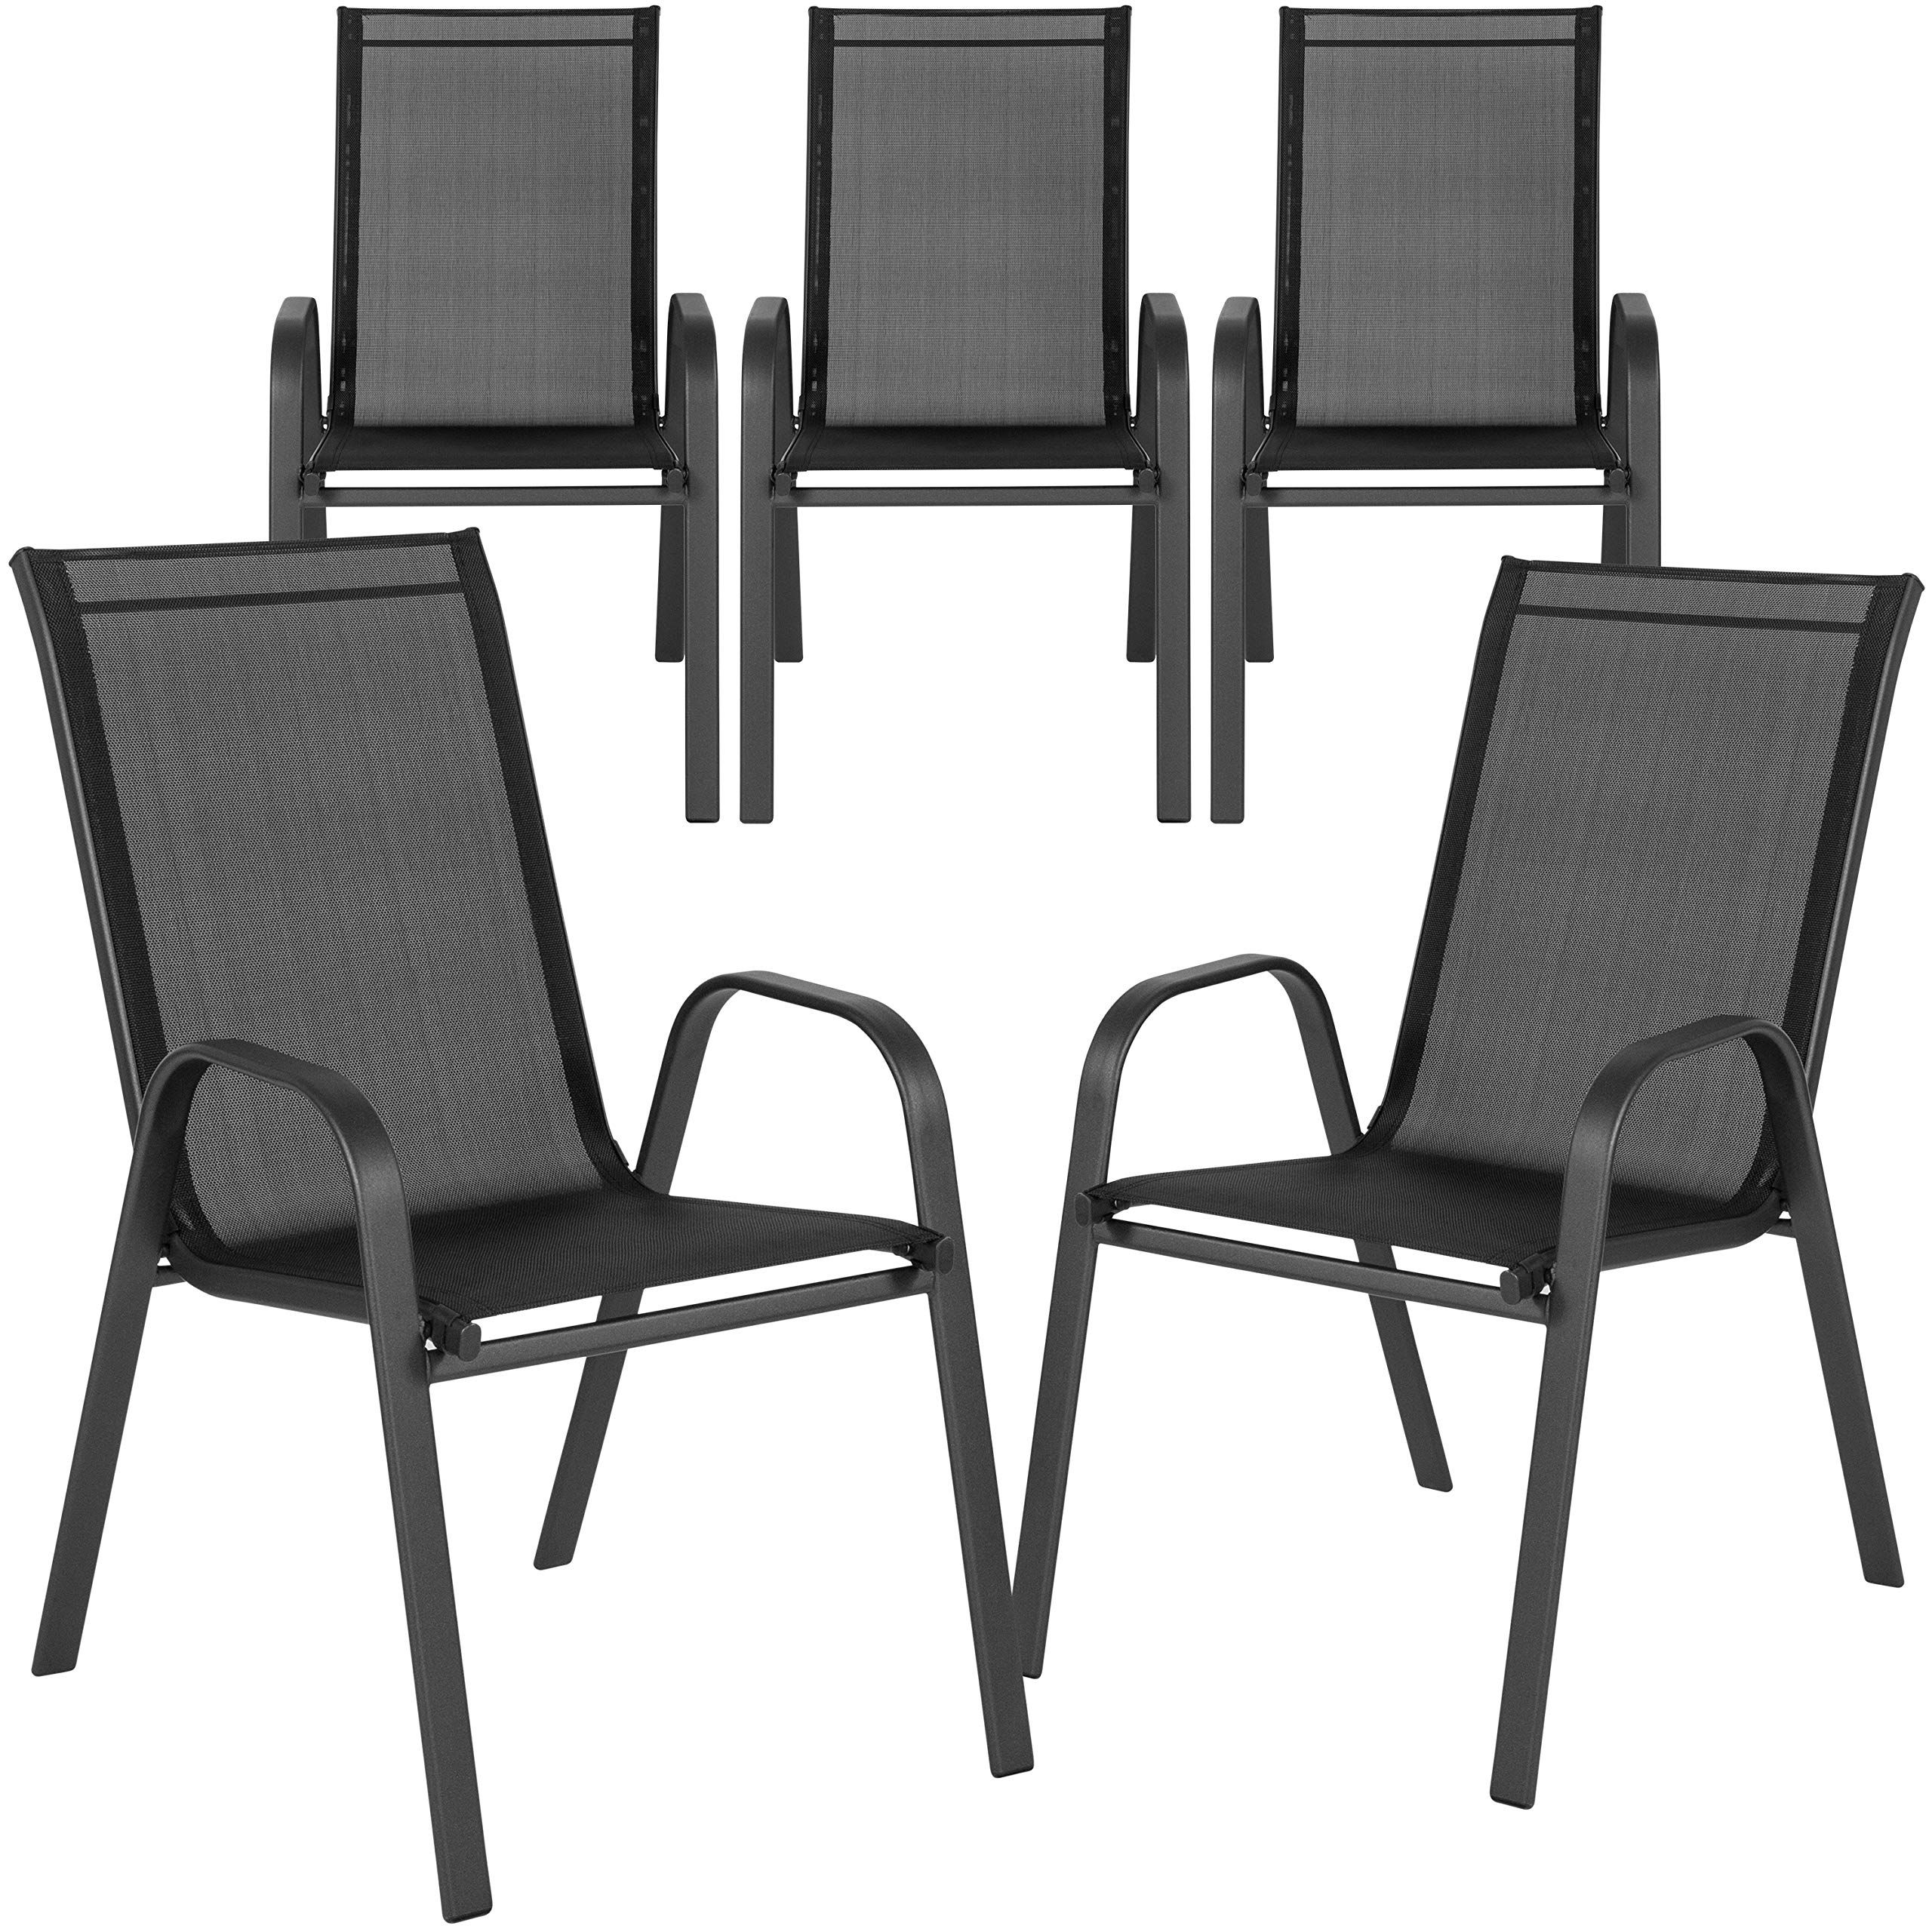 Flash Furniture 5 Pk. Brazos Series Black Outdoor Stack Chair with Flex Comfort Material and Metal Frame by Flash Furniture